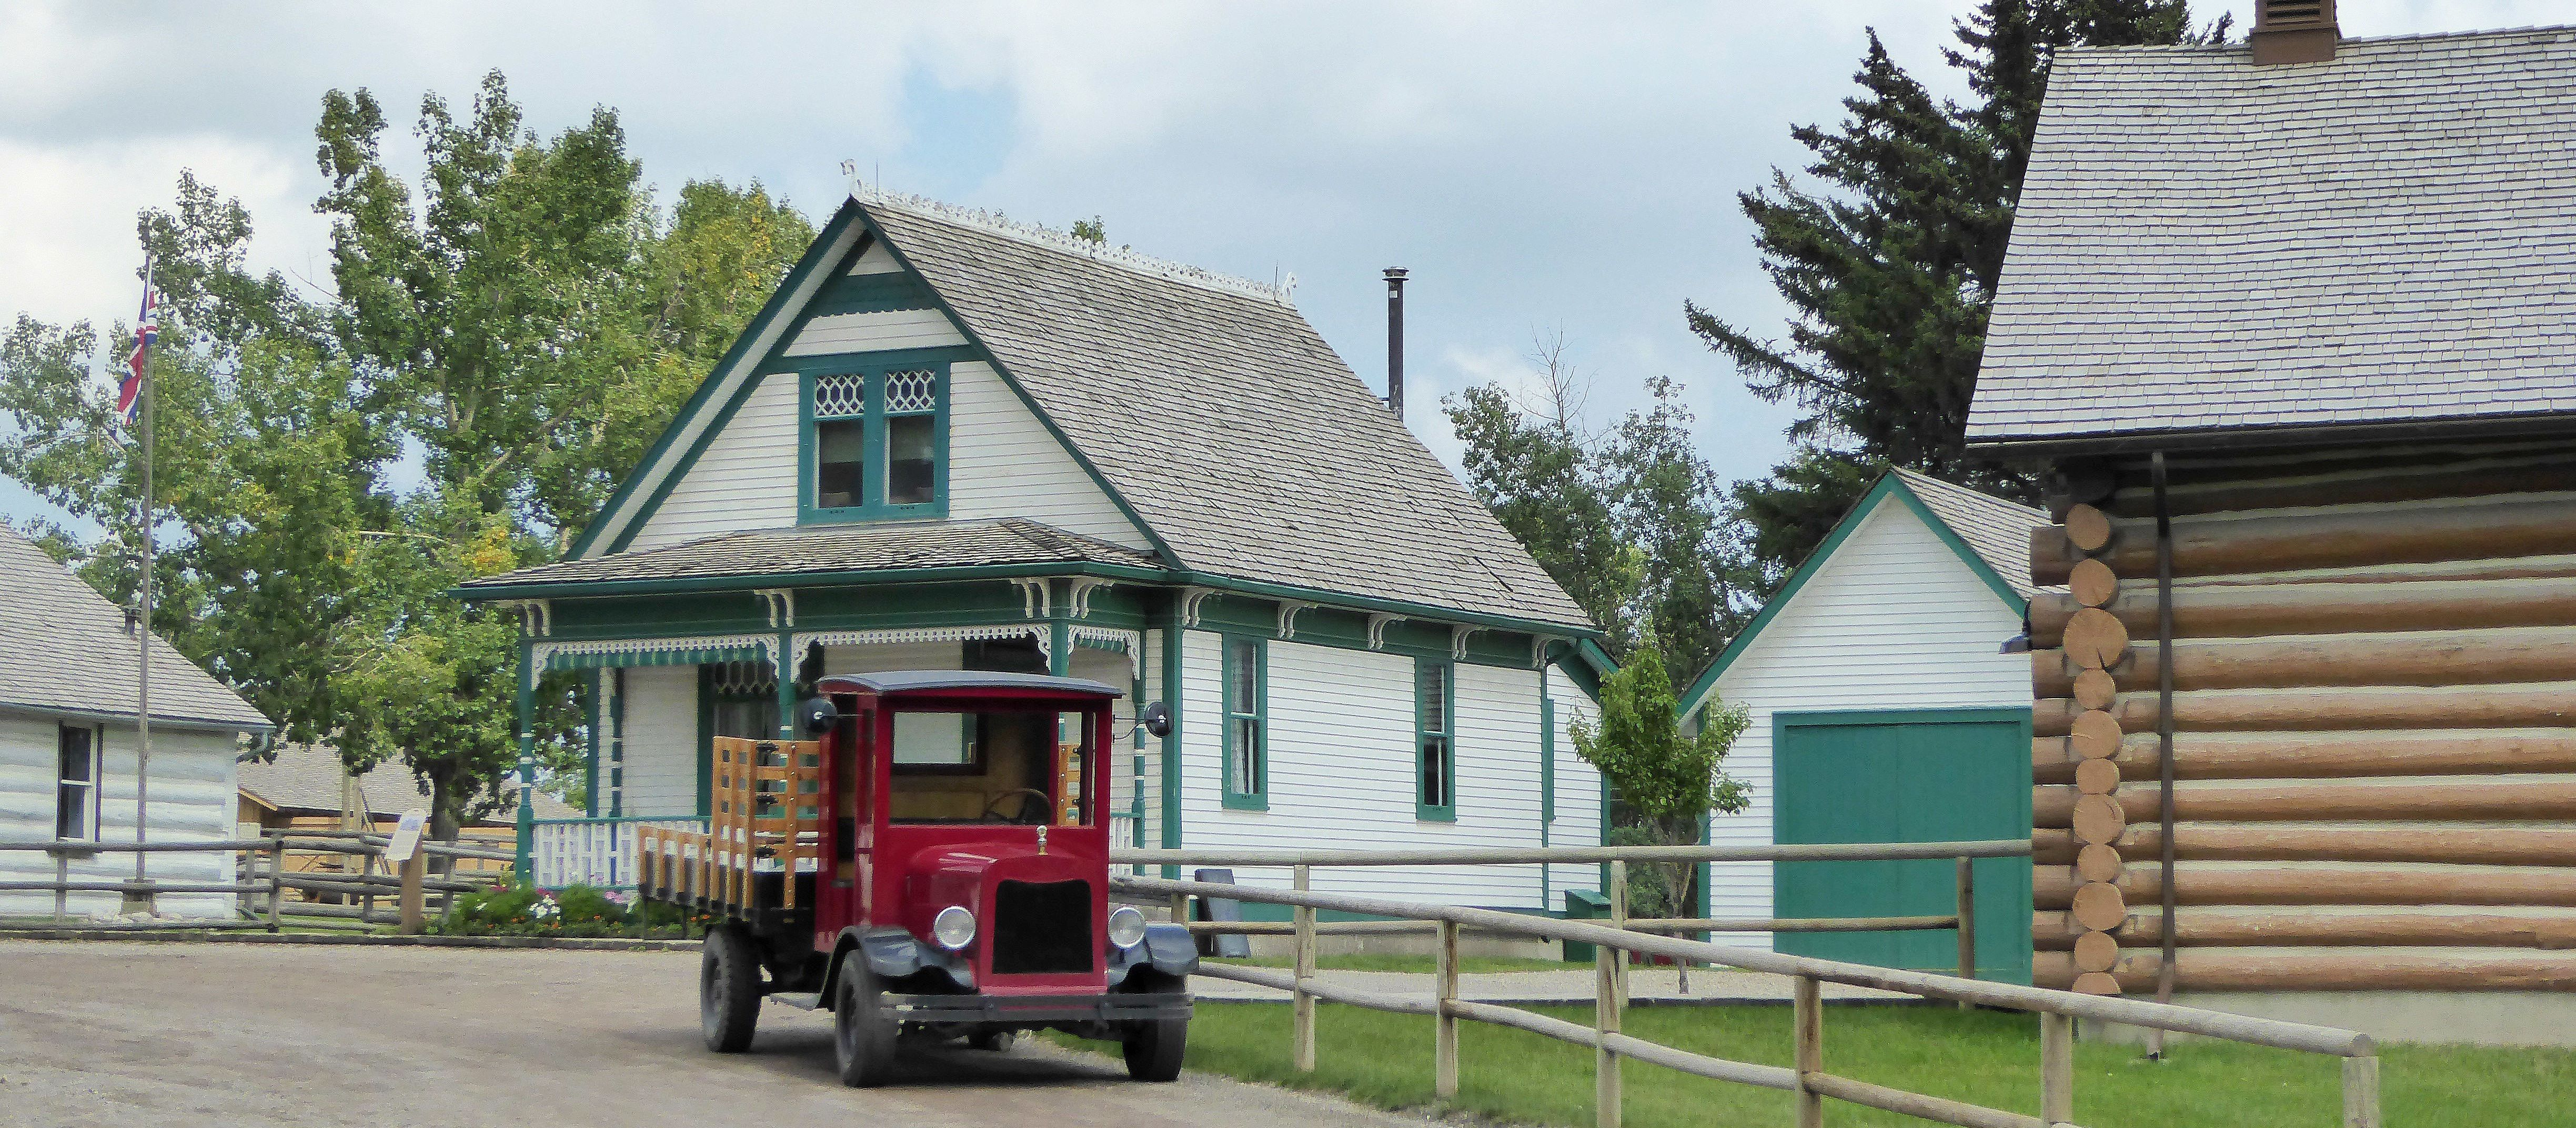 Heritage Park Historic Village